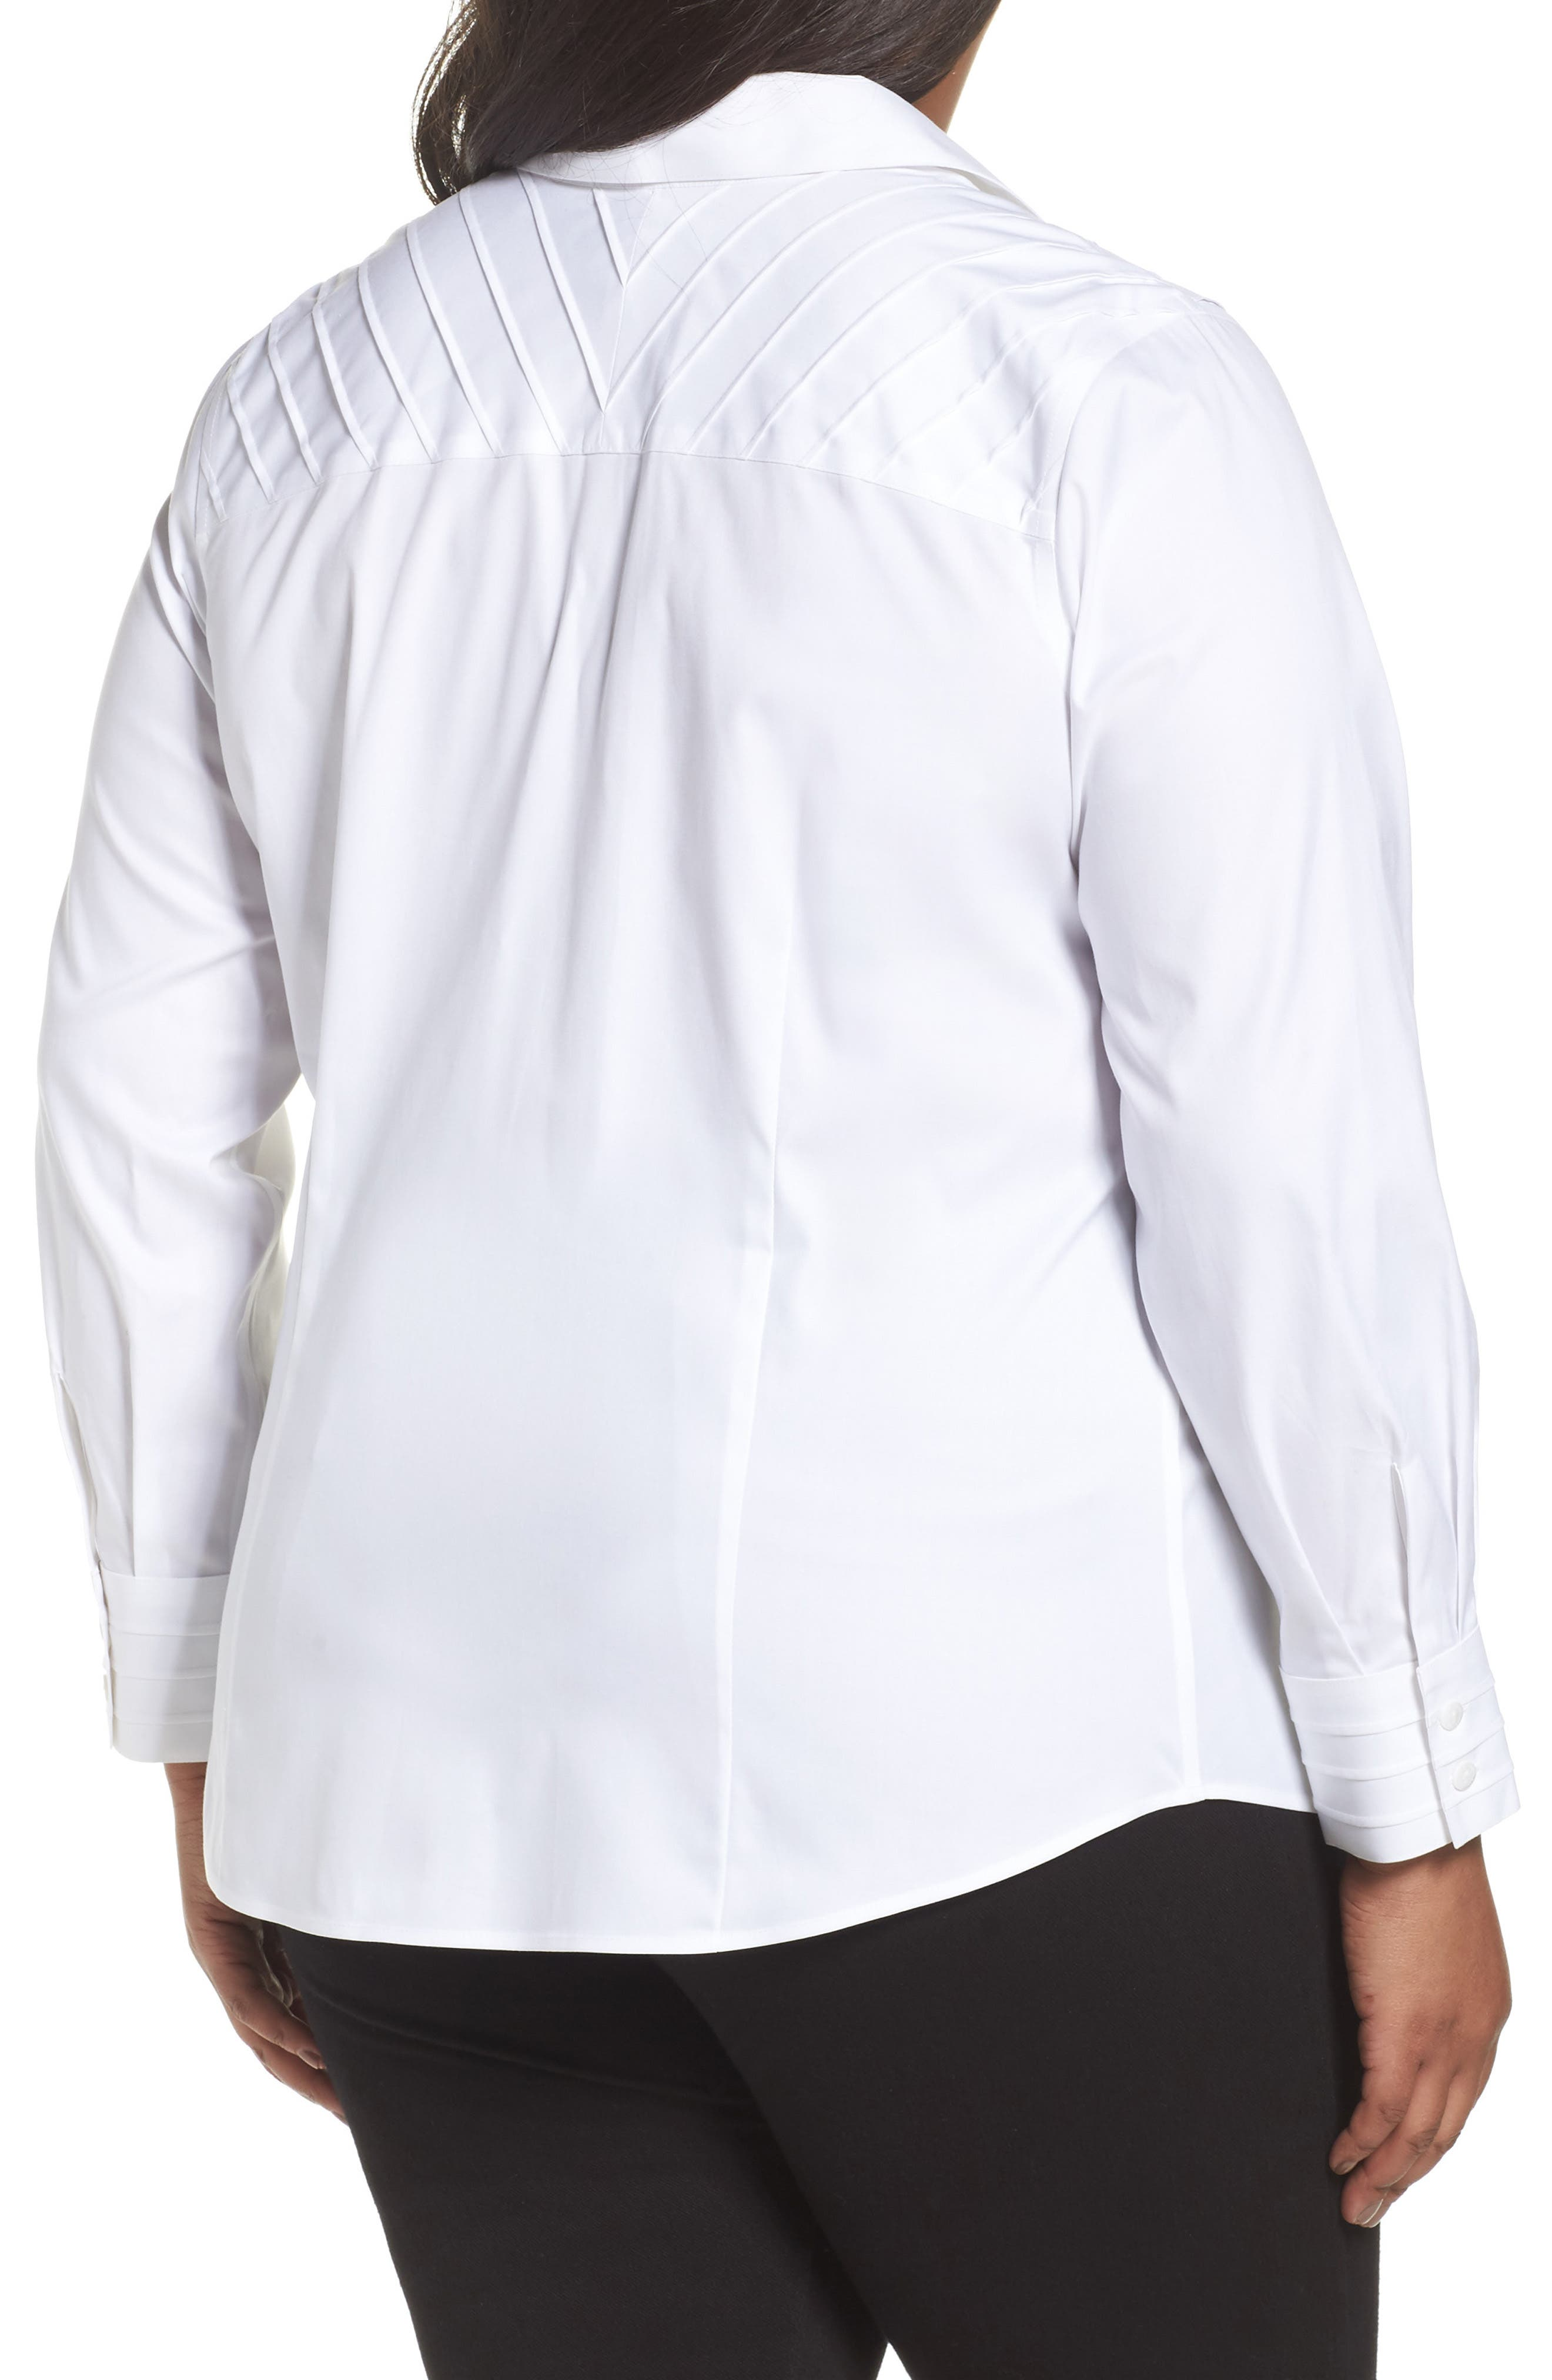 Rita Solid Stretch Cotton Top,                             Alternate thumbnail 2, color,                             107